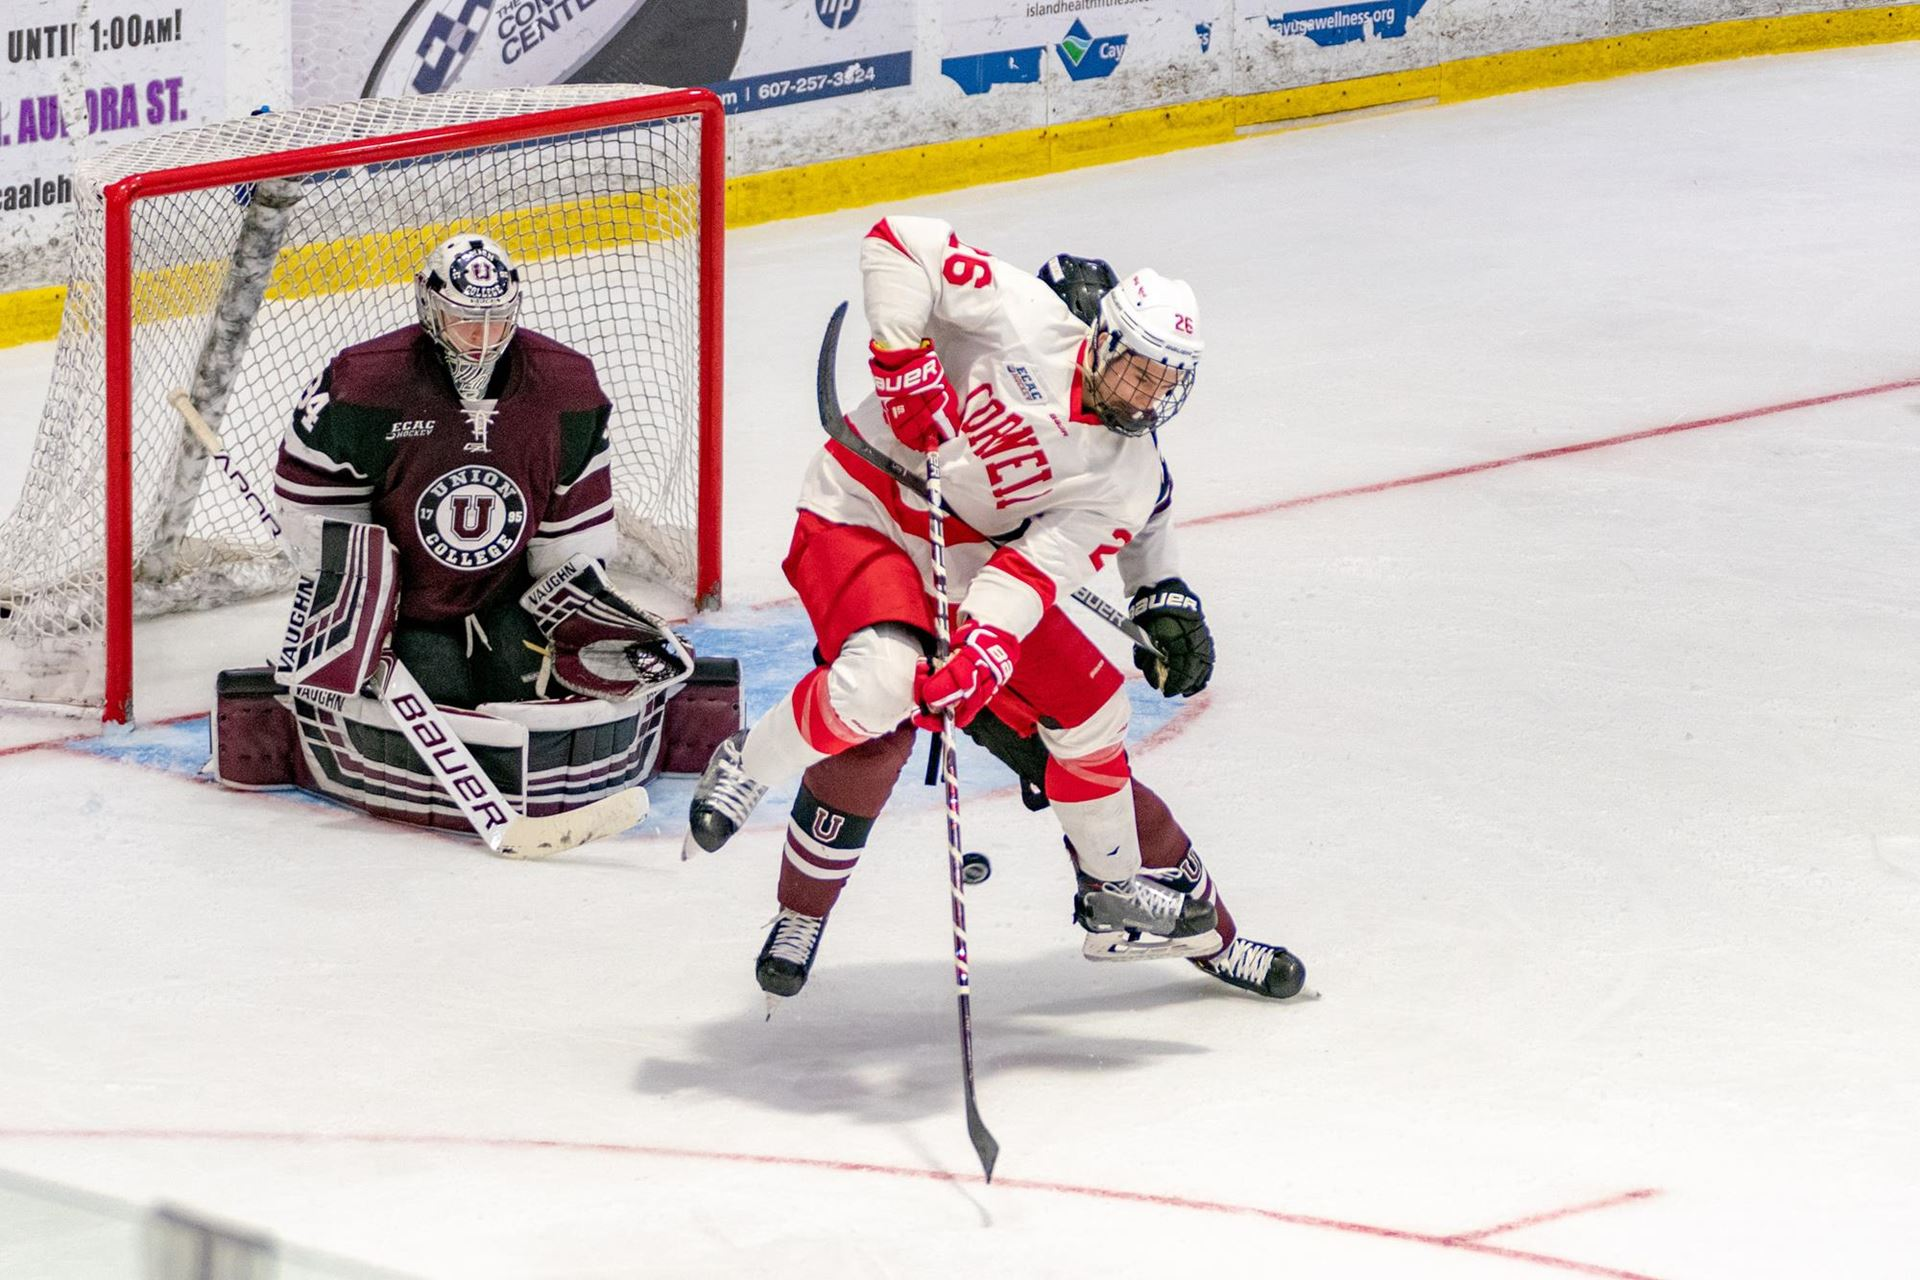 Cornell musters 3-3 tie at Union